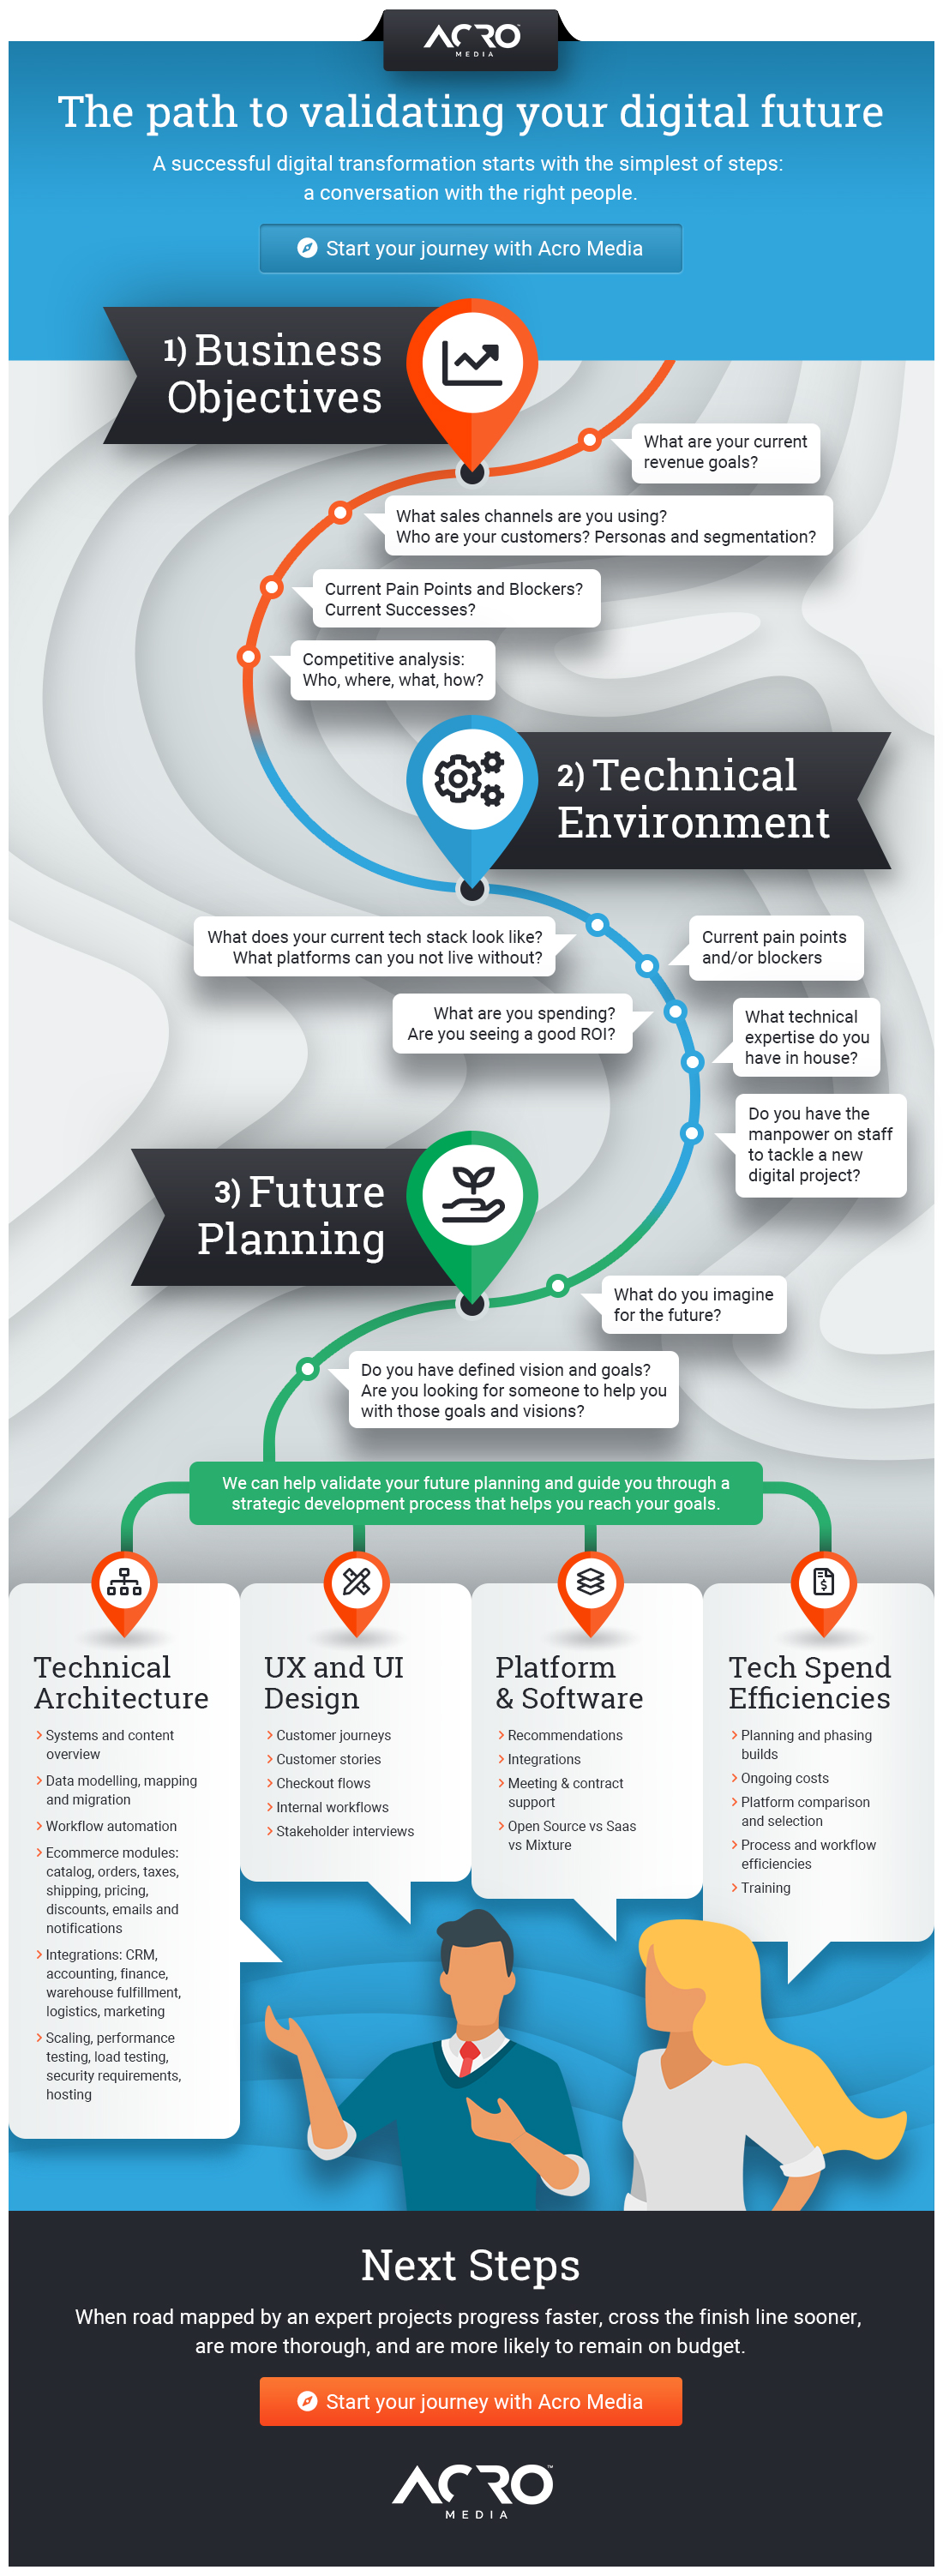 Acro Media - The path do validating your digital future Infographic